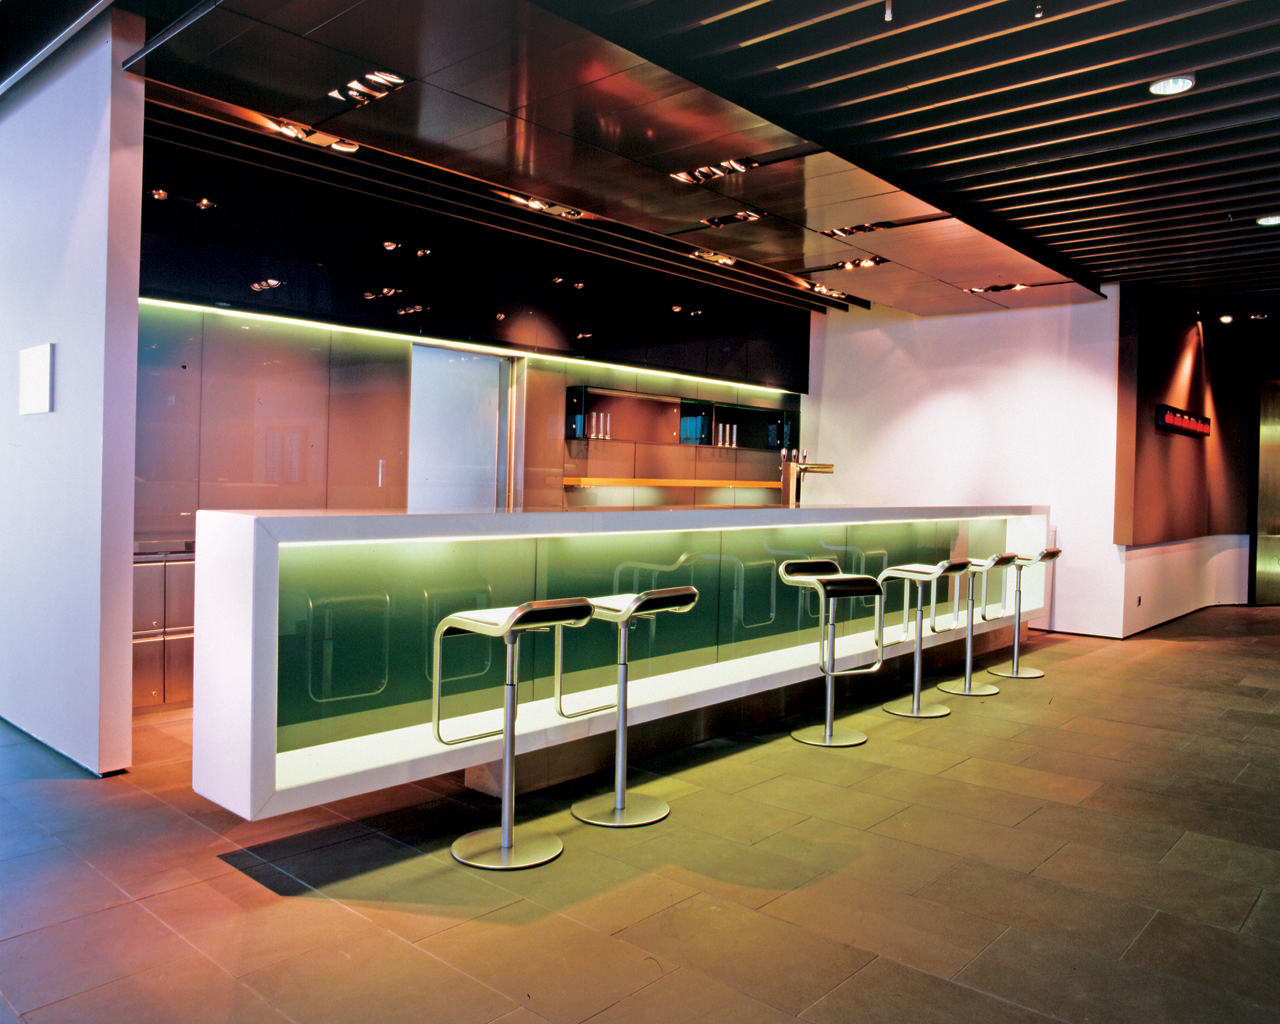 Home interior designs bar design ideas for your home for Restaurant interior designs ideas